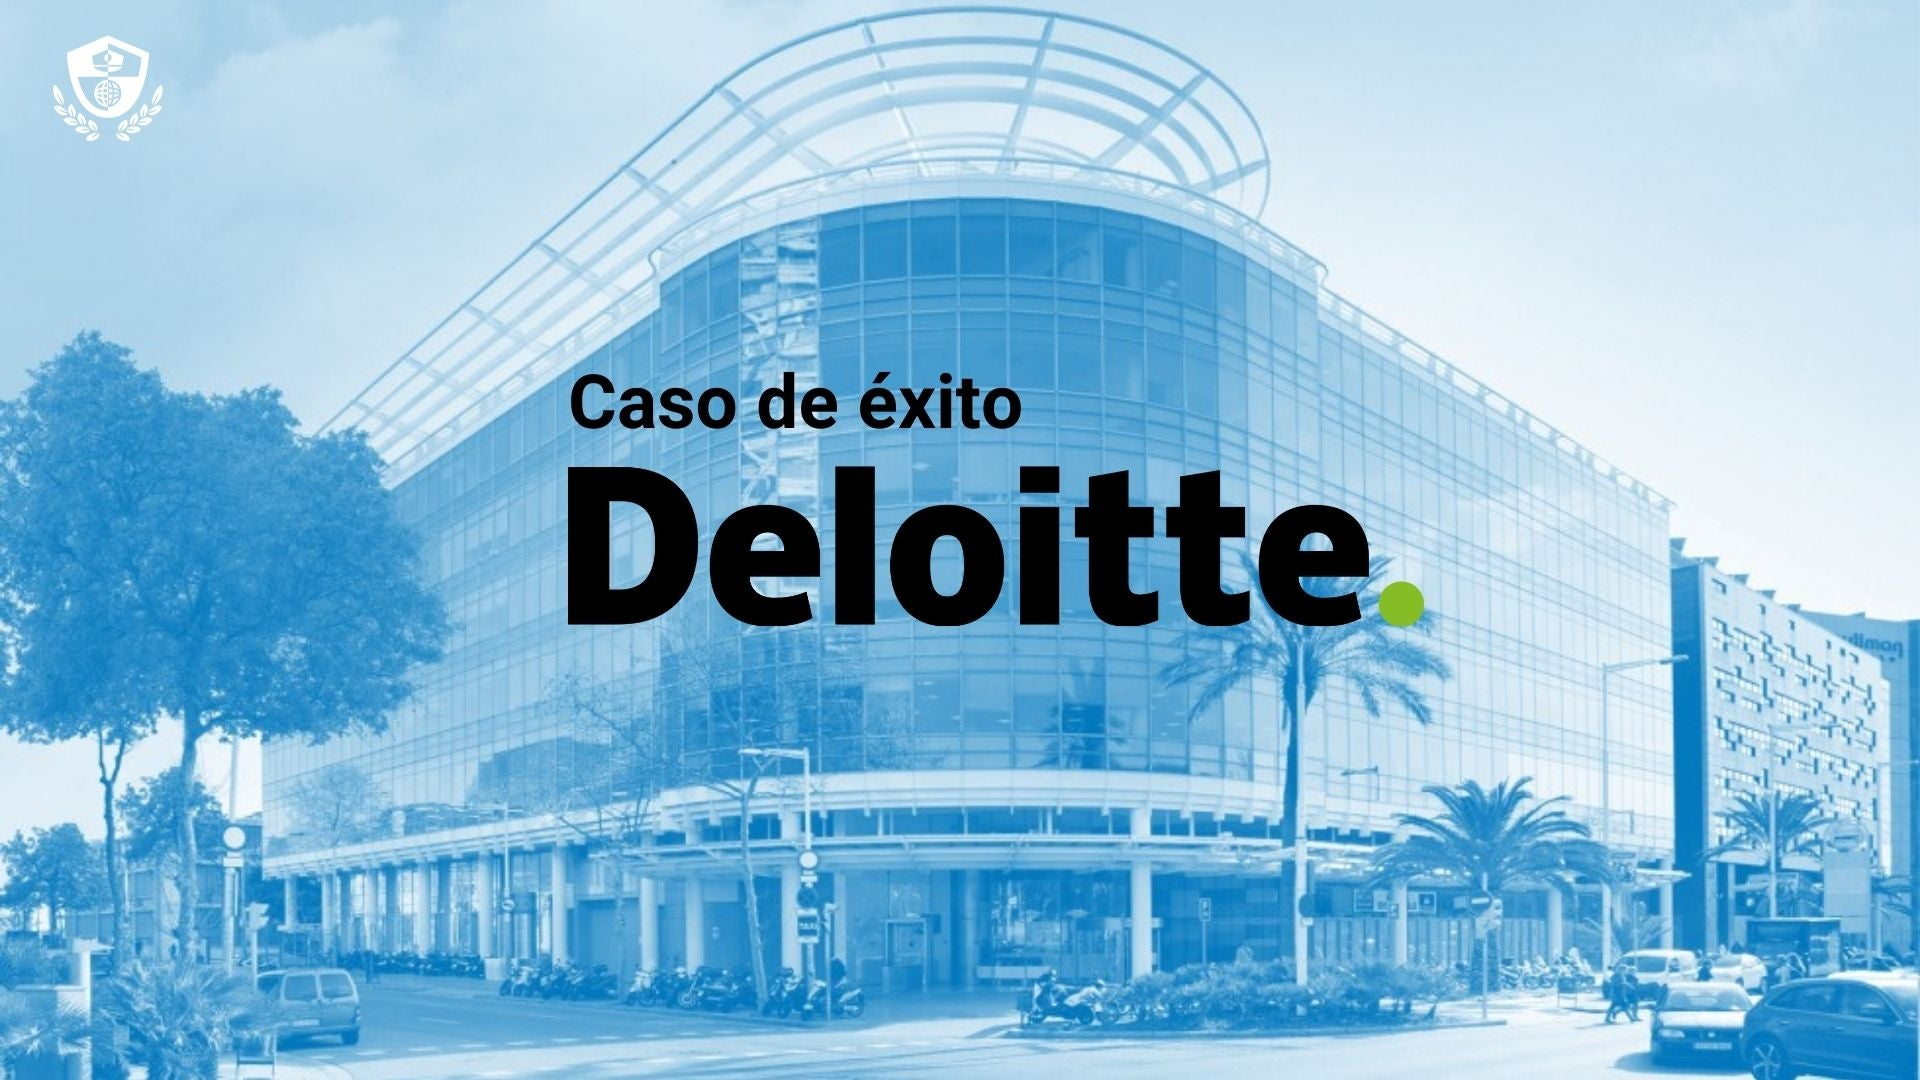 Caso de éxito Deloitte LISA Institute